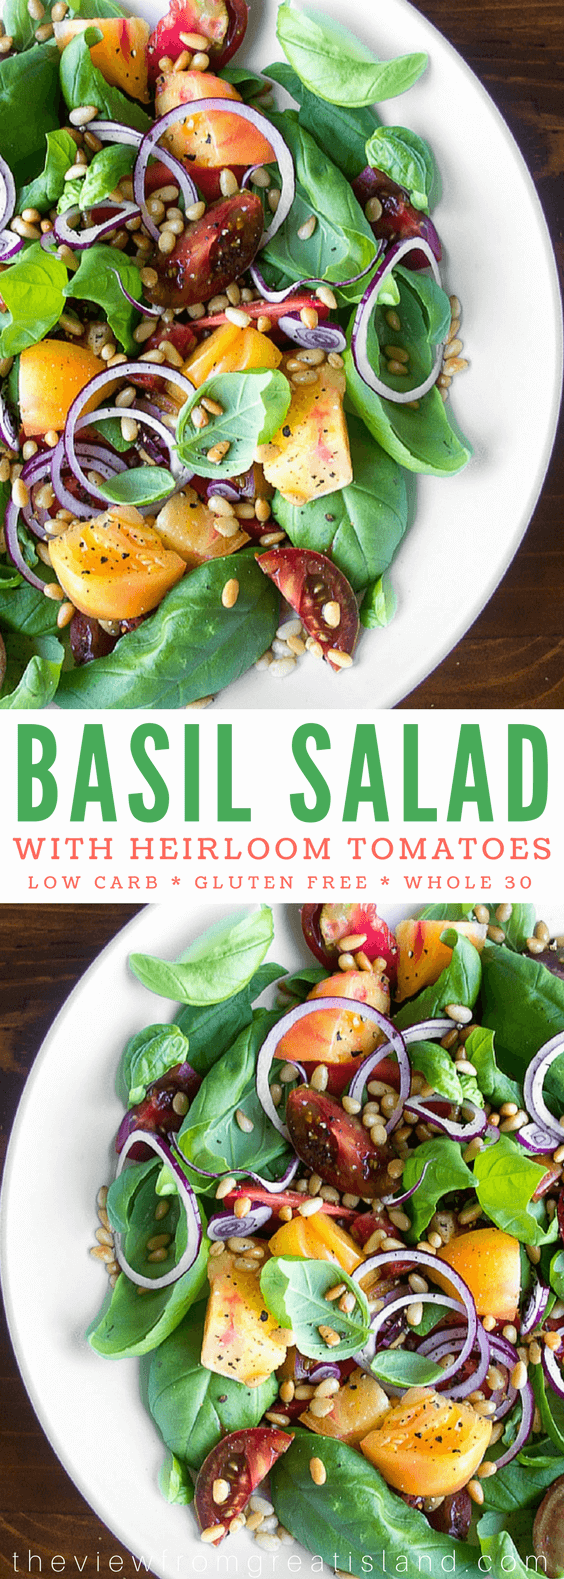 Basil Salad with Heirloom Tomatoes pin